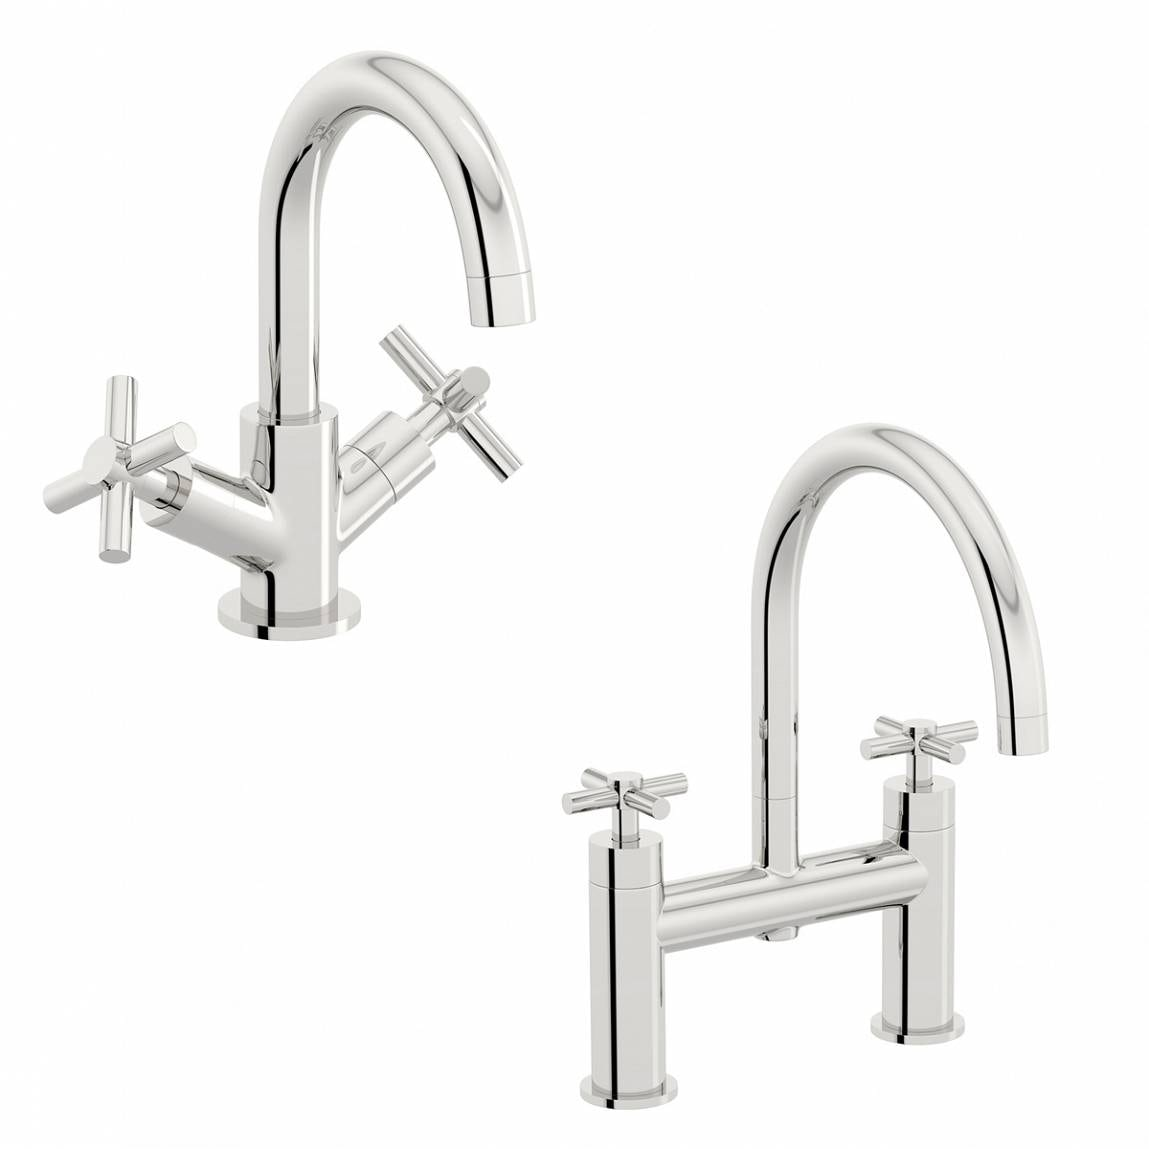 Mode Tate basin and bath mixer tap pack